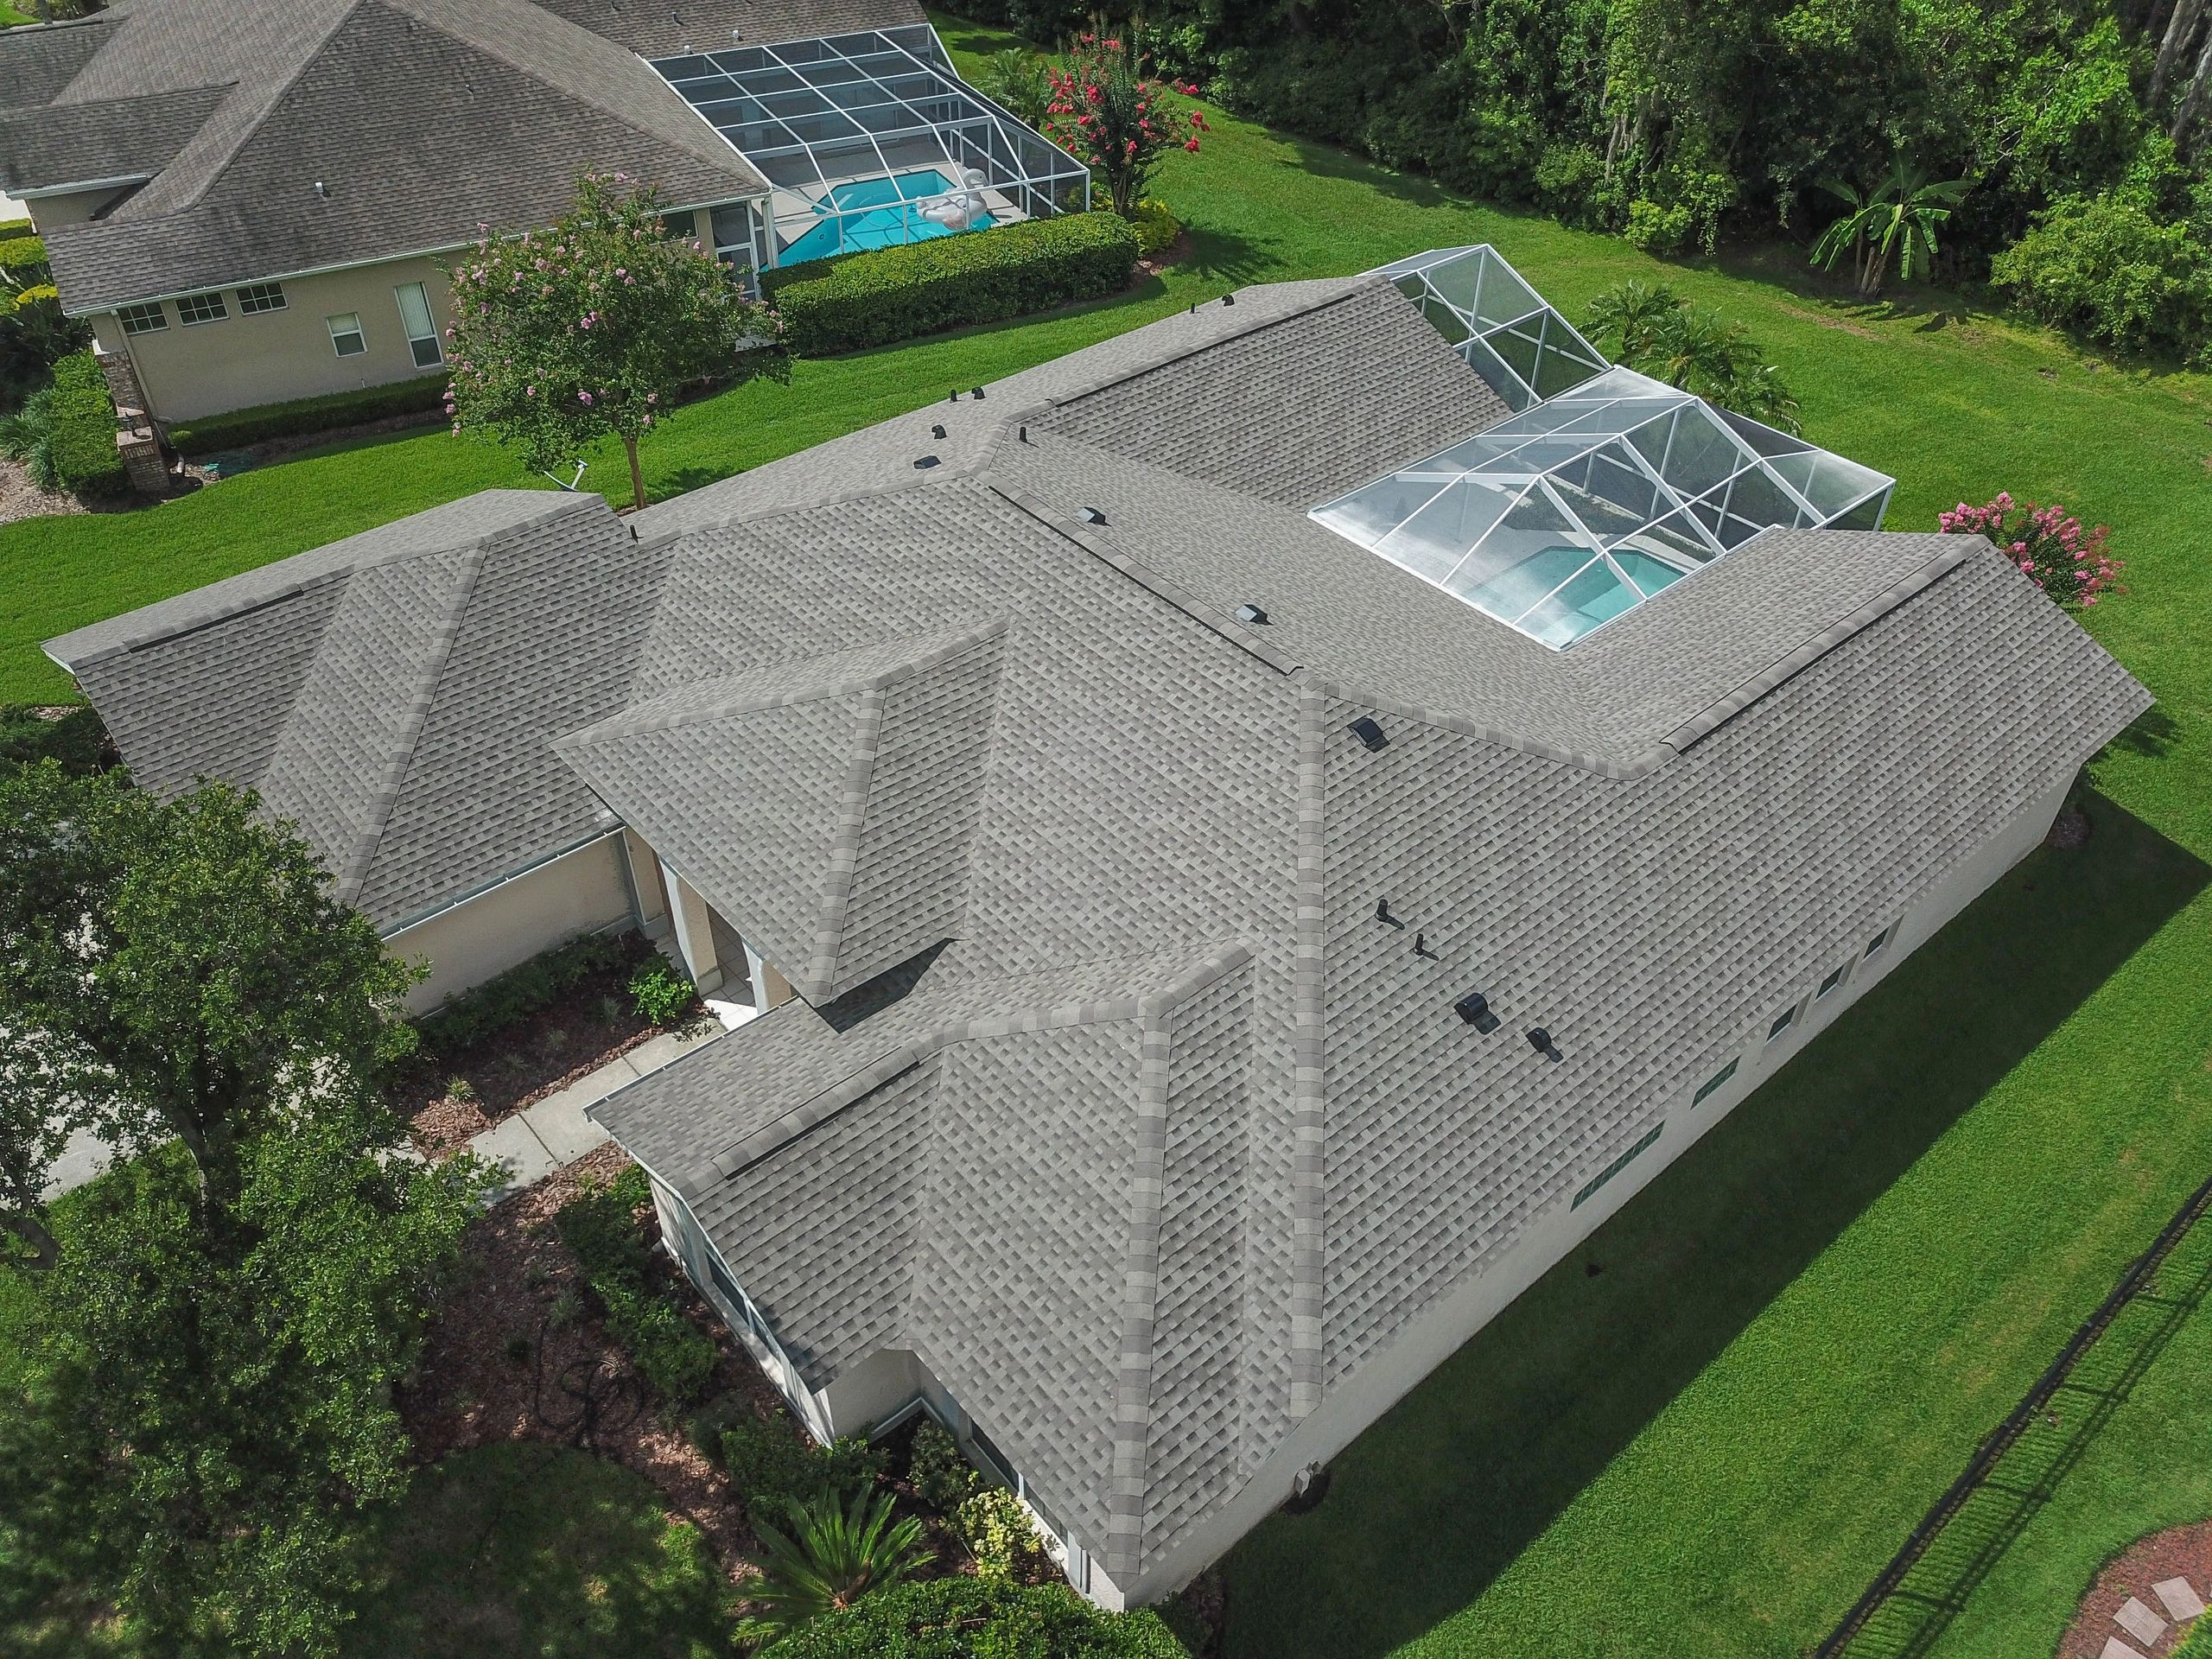 All Roof images are Roofs that we replaced.